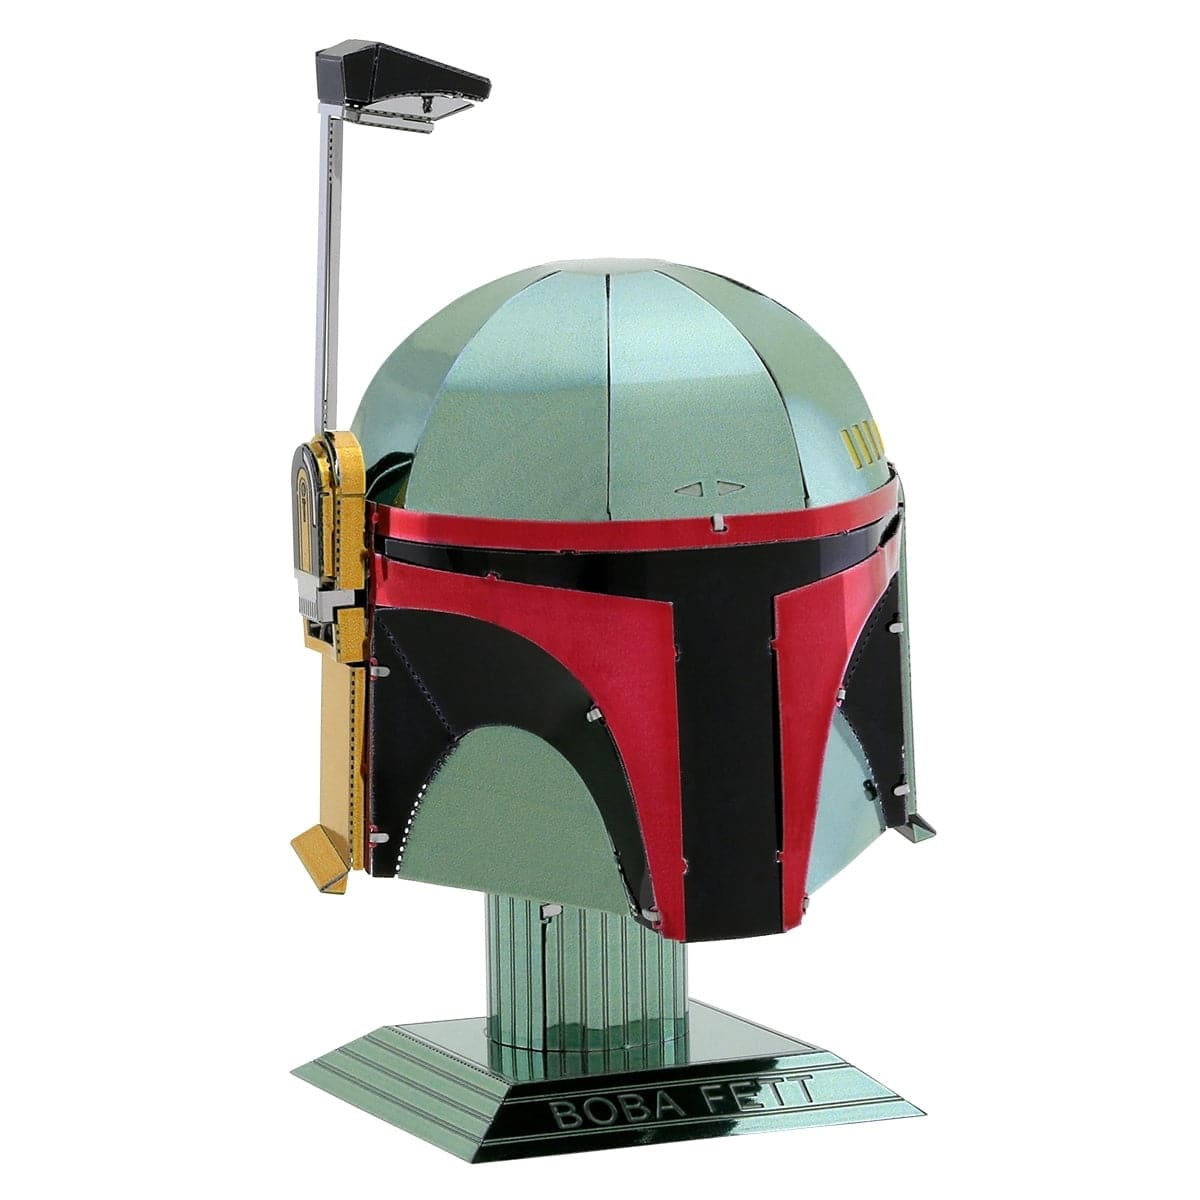 Fascinations Metal Earth - Star Wars - Boba Fett Helmet - Legacy Toys